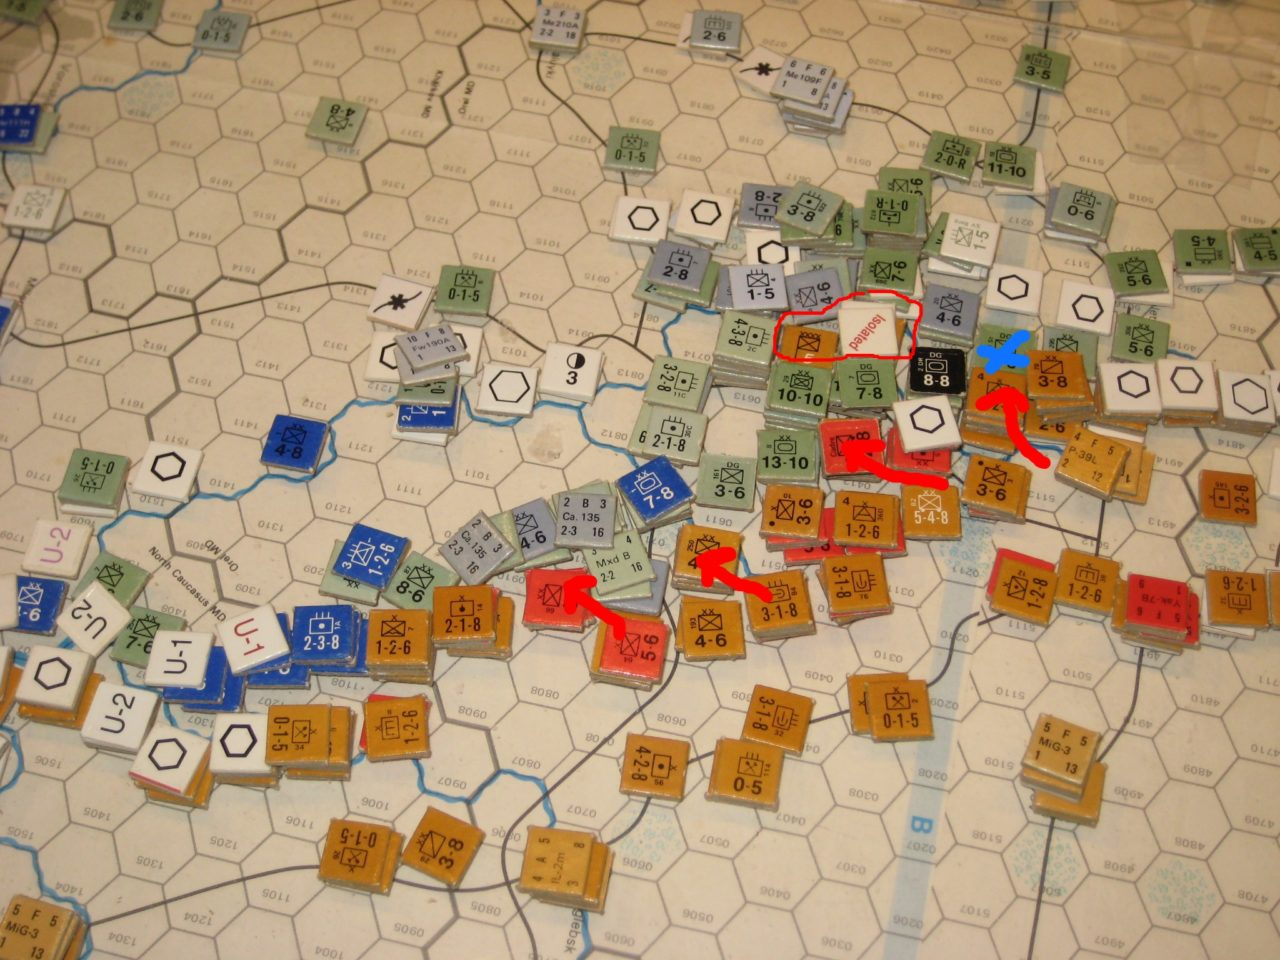 Battle of Voronezh